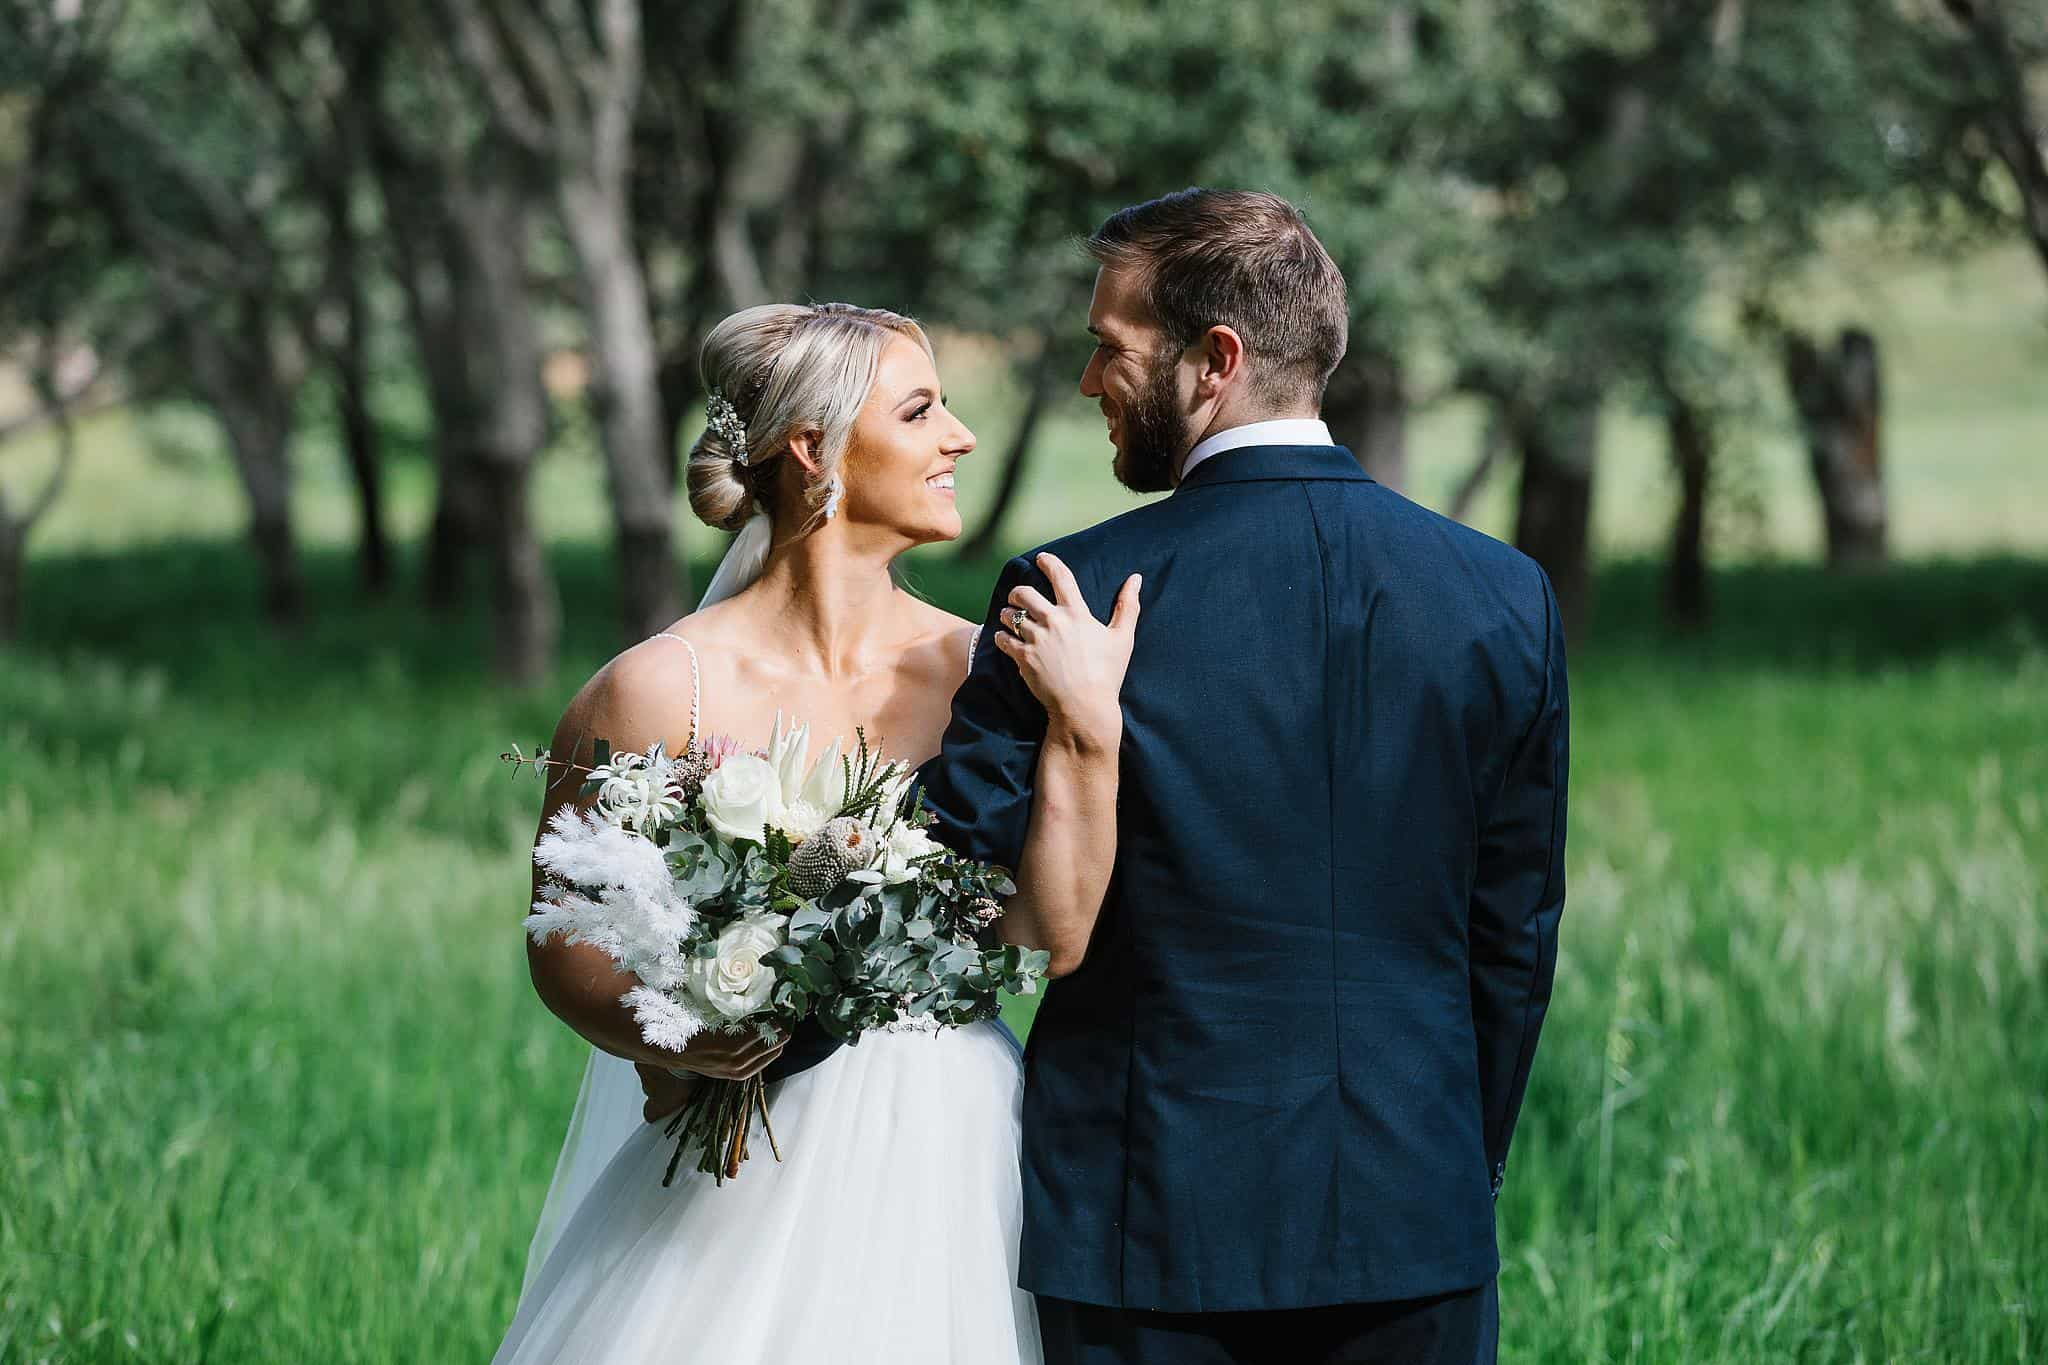 Bride and groom share an intimate moment